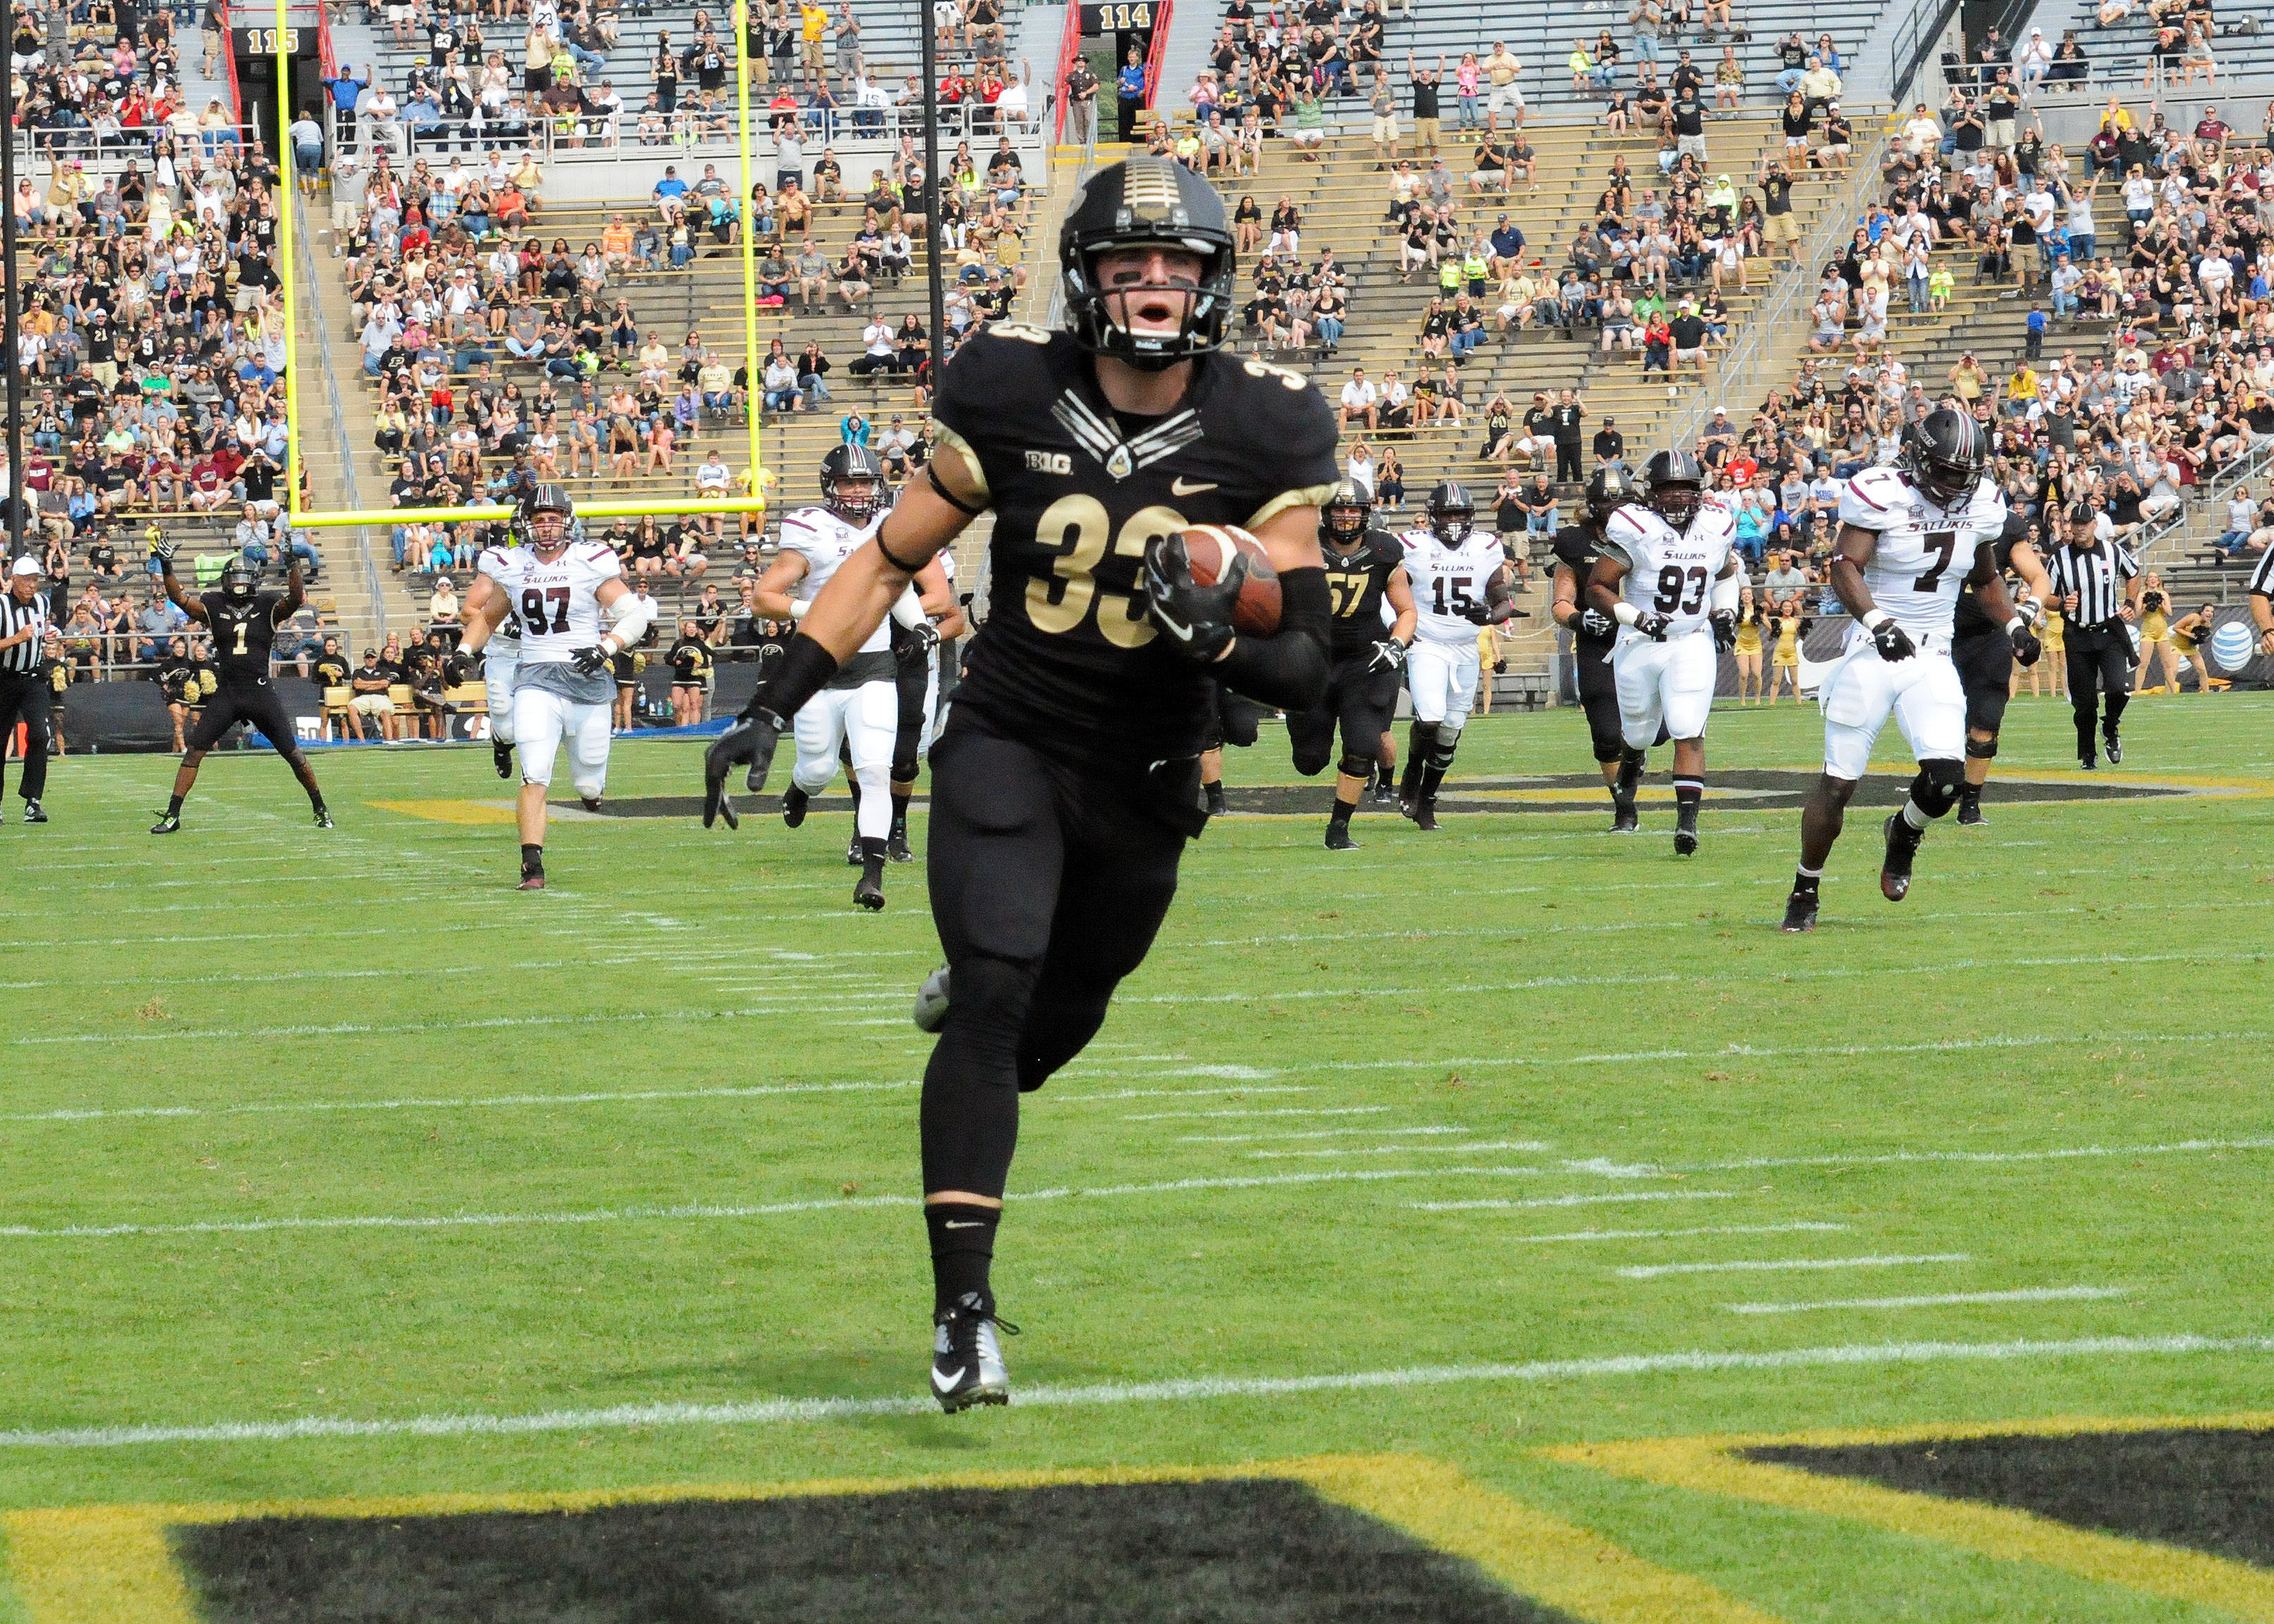 Purdue wide receiver Danny Anthrop finds the end zone after scoring on a 44-yard touchdown pass. Purdue beat Southern Illinois 35-13 Saturday afternoon. (Photos by Dave Deak)